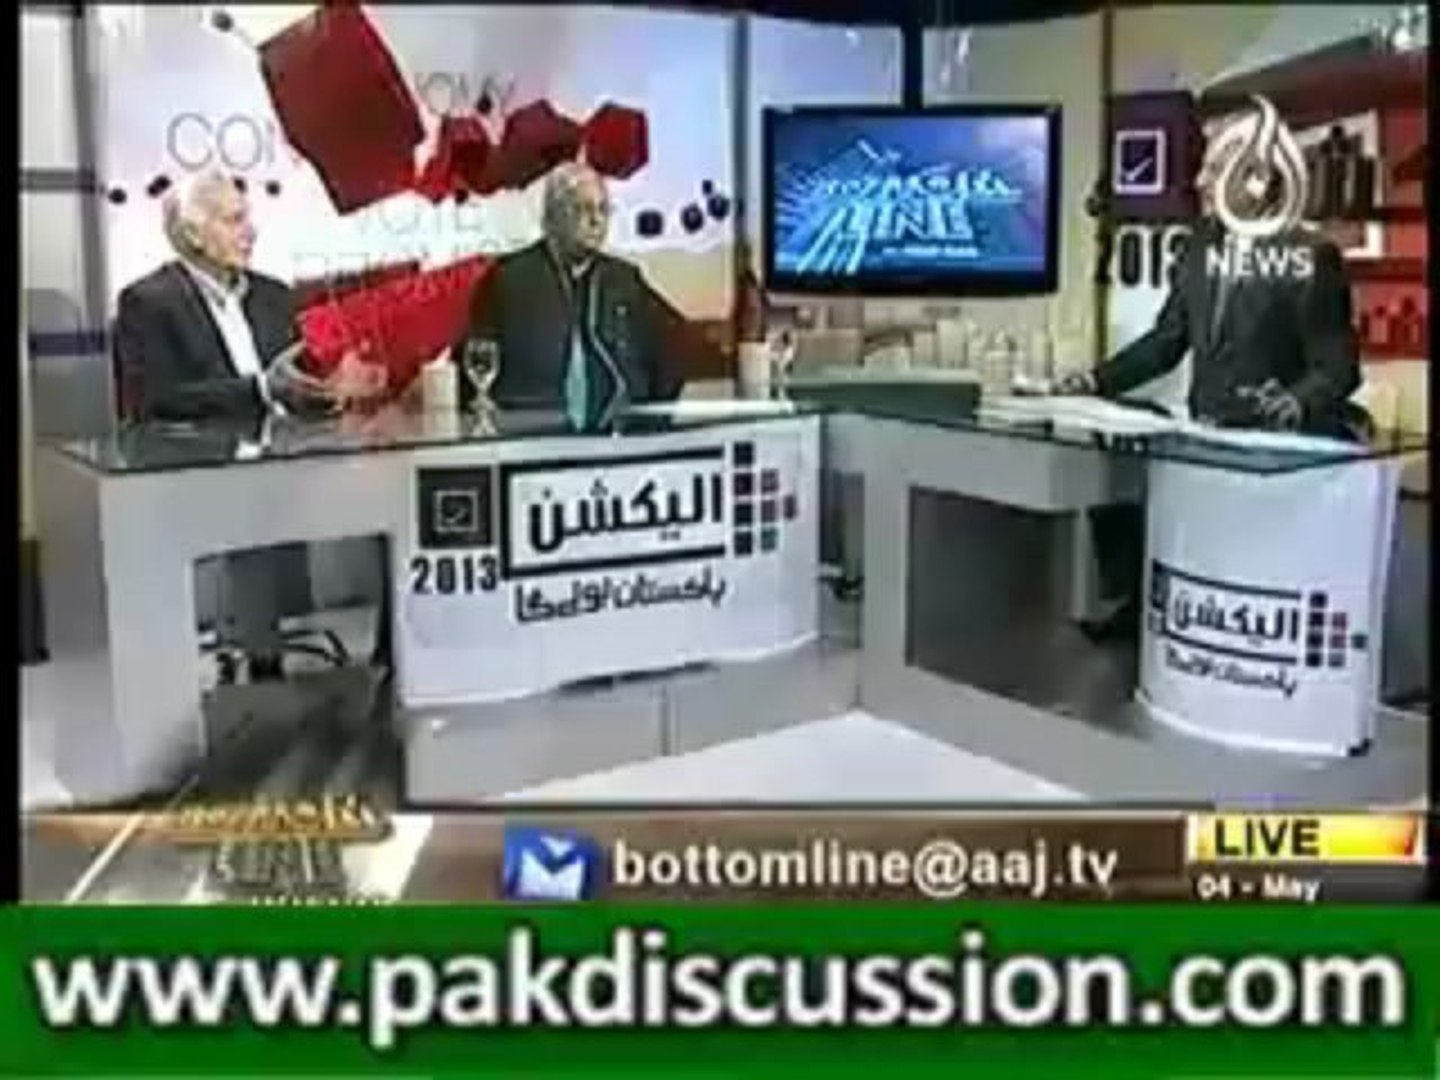 Bottom Line - 4th May 2013